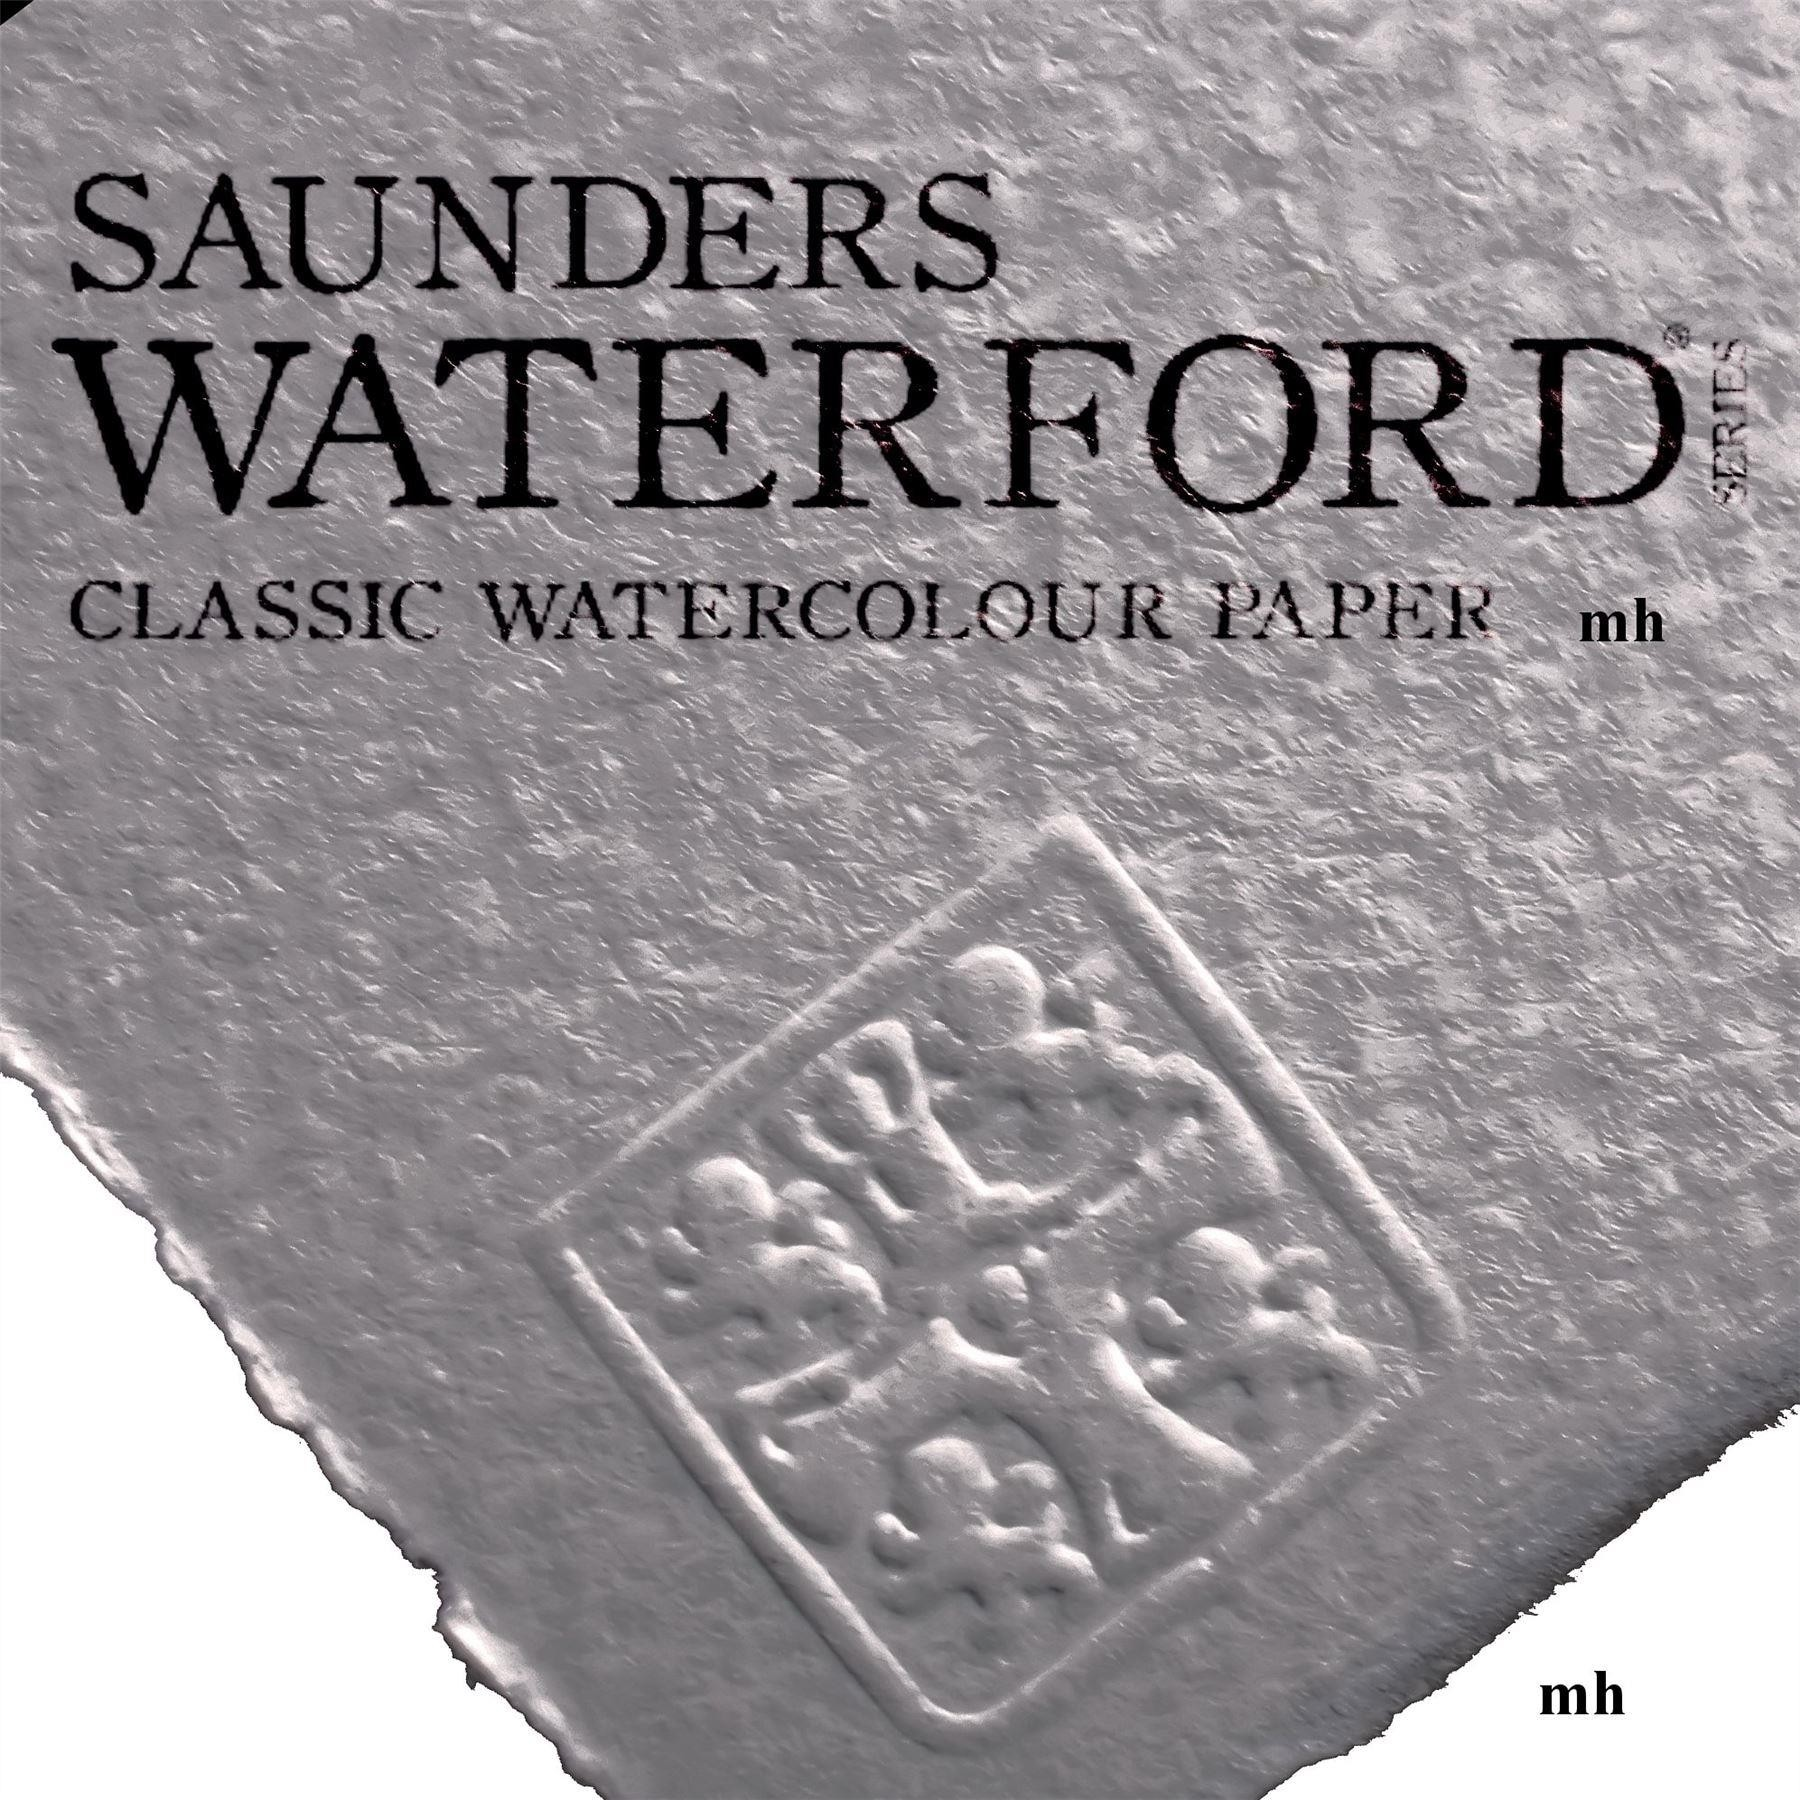 """Saunders Waterford 15"""" x 11"""", 4 sheets 100% cotton white CP 425gsm (200lb) watercolour paper"""